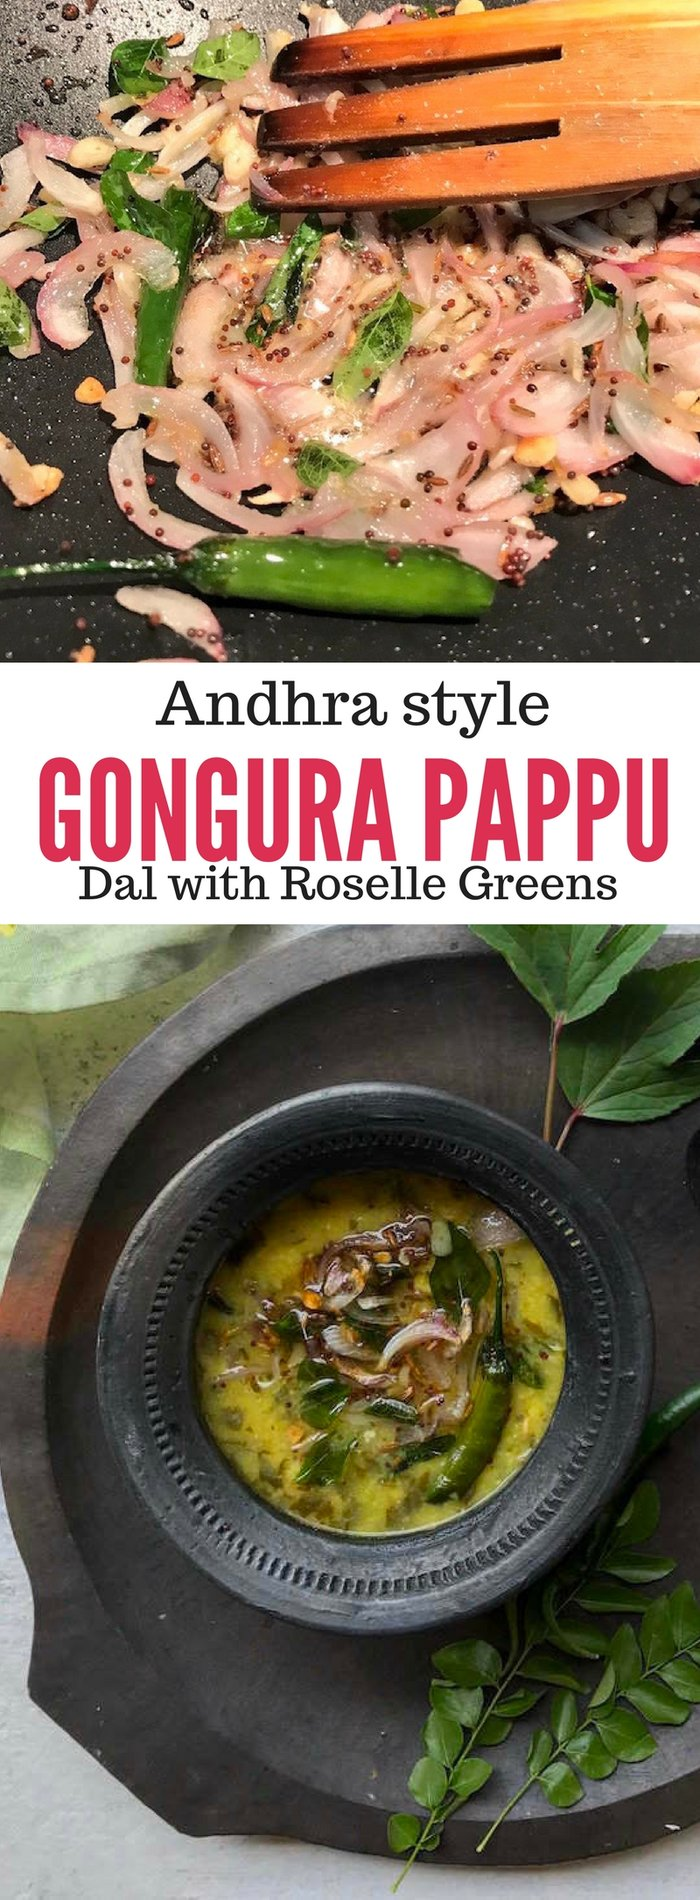 Gongura Pappu is an Andhra specialty, where dal is flavoured with local greens called Gongura (Roselle greens)